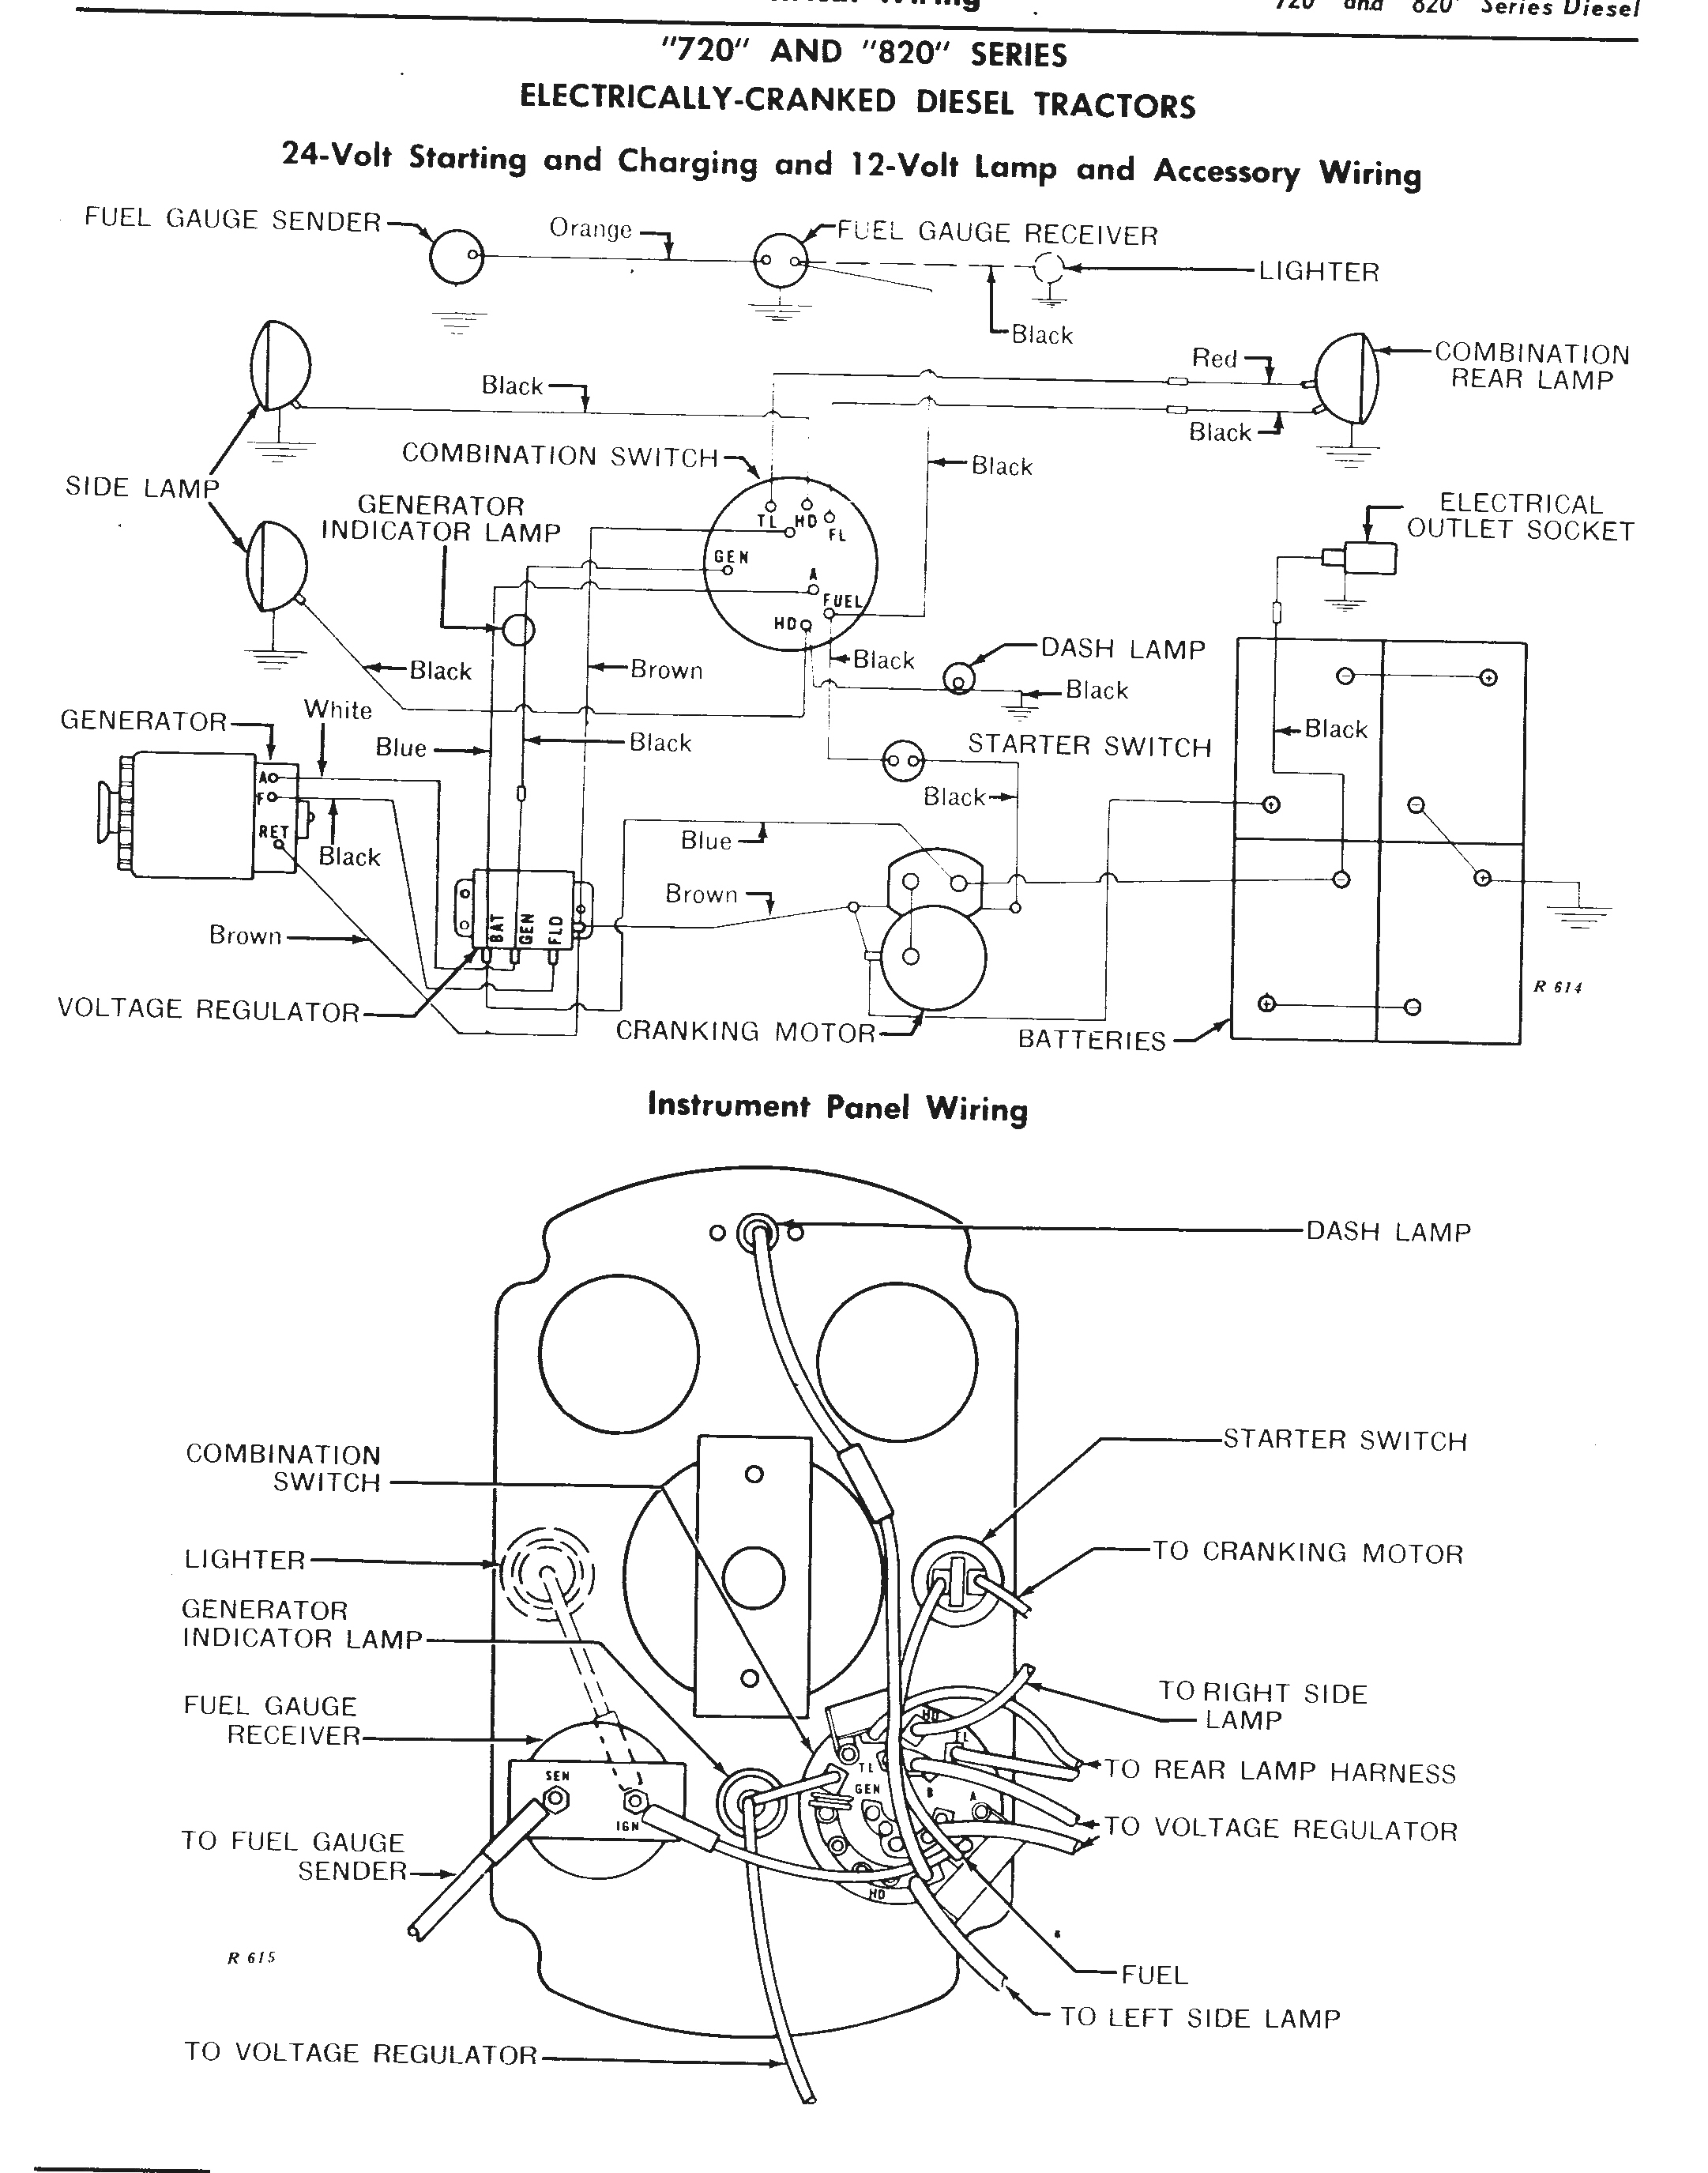 1947 John Deere Model A Wiring Diagram For A Year - Example ... A Model John Deere Wiring Diagrams on john deere 320 wiring-diagram, 240 volt 3 phase wiring diagram, john deere 3020 diagram, john deere model a exhaust, john deere 3010 wiring-diagram, john deere 145 wiring-diagram, john deere z225 wiring-diagram, 1929 ford model wiring diagram, john deere 4430 wiring-diagram, jd 4020 24 volt wiring diagram, john deere model a controls, john deere 4010 wiring-diagram, john deere m wiring-diagram, john deere model a parts, john deere 2755 hydraulic diagram, john deere model a crankshaft, john deere l120 hydrostatic transmission diagram, john deere 140 coil, john deere model a electrical system, john deere 345 wiring-diagram,